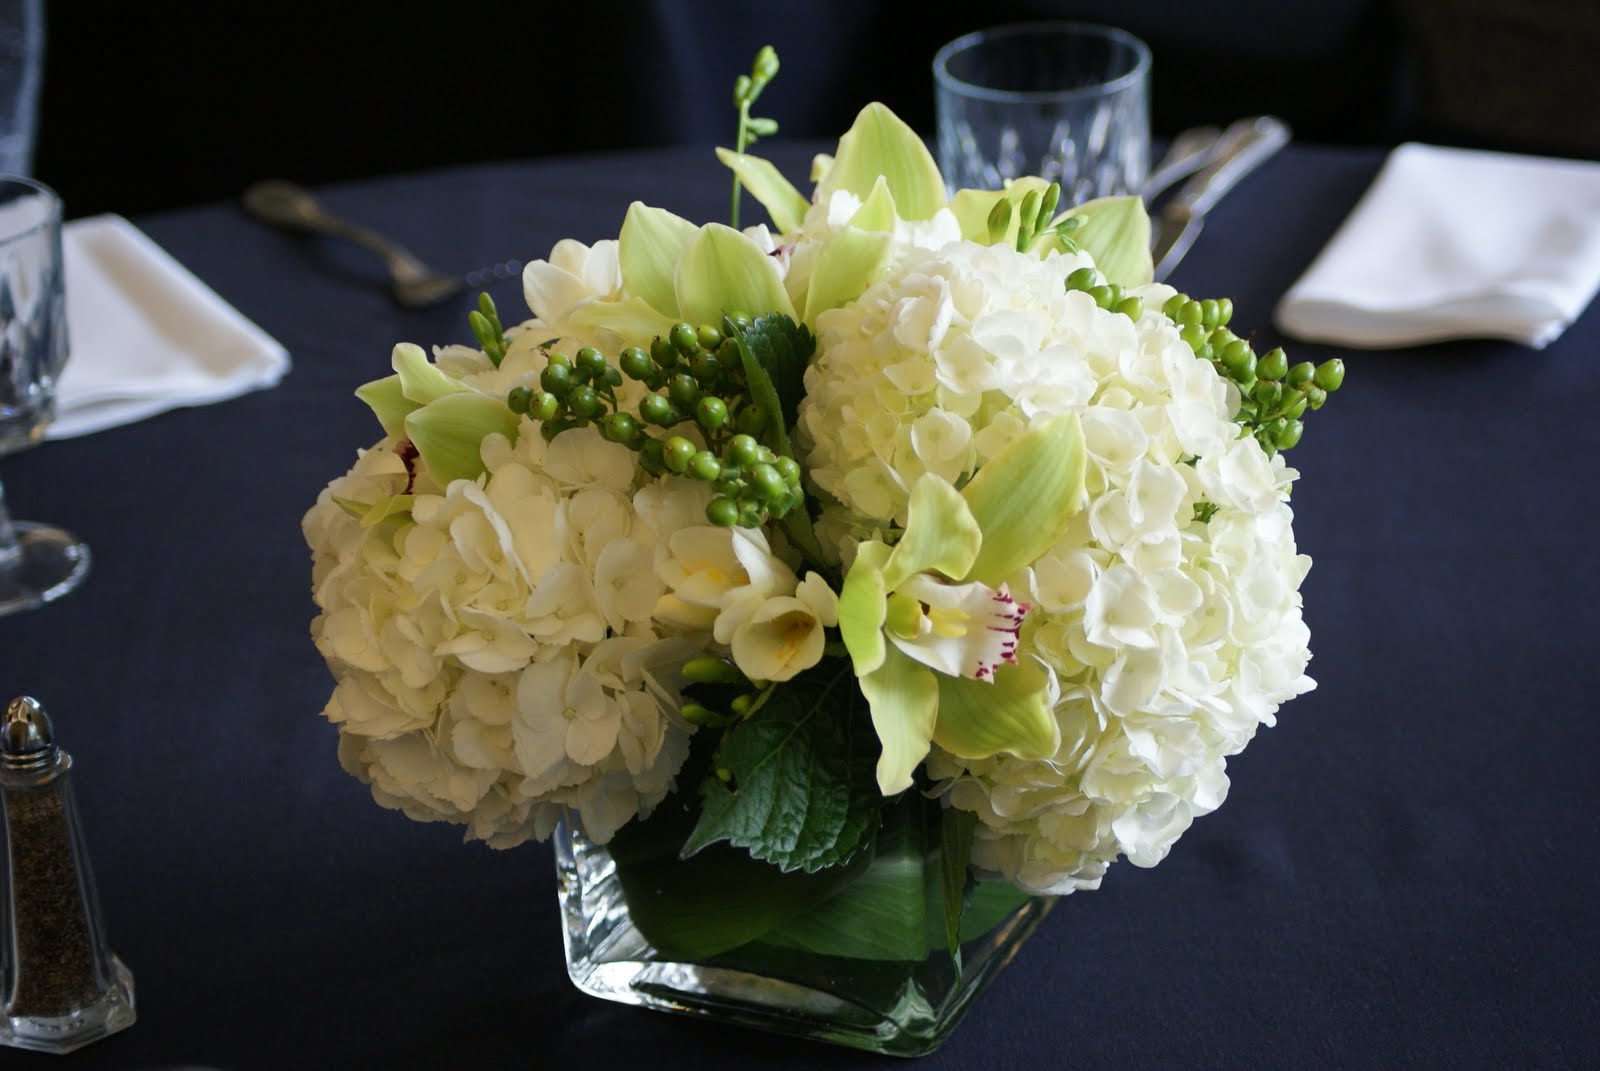 Low centerpiece with white hydrangea green cymbidium